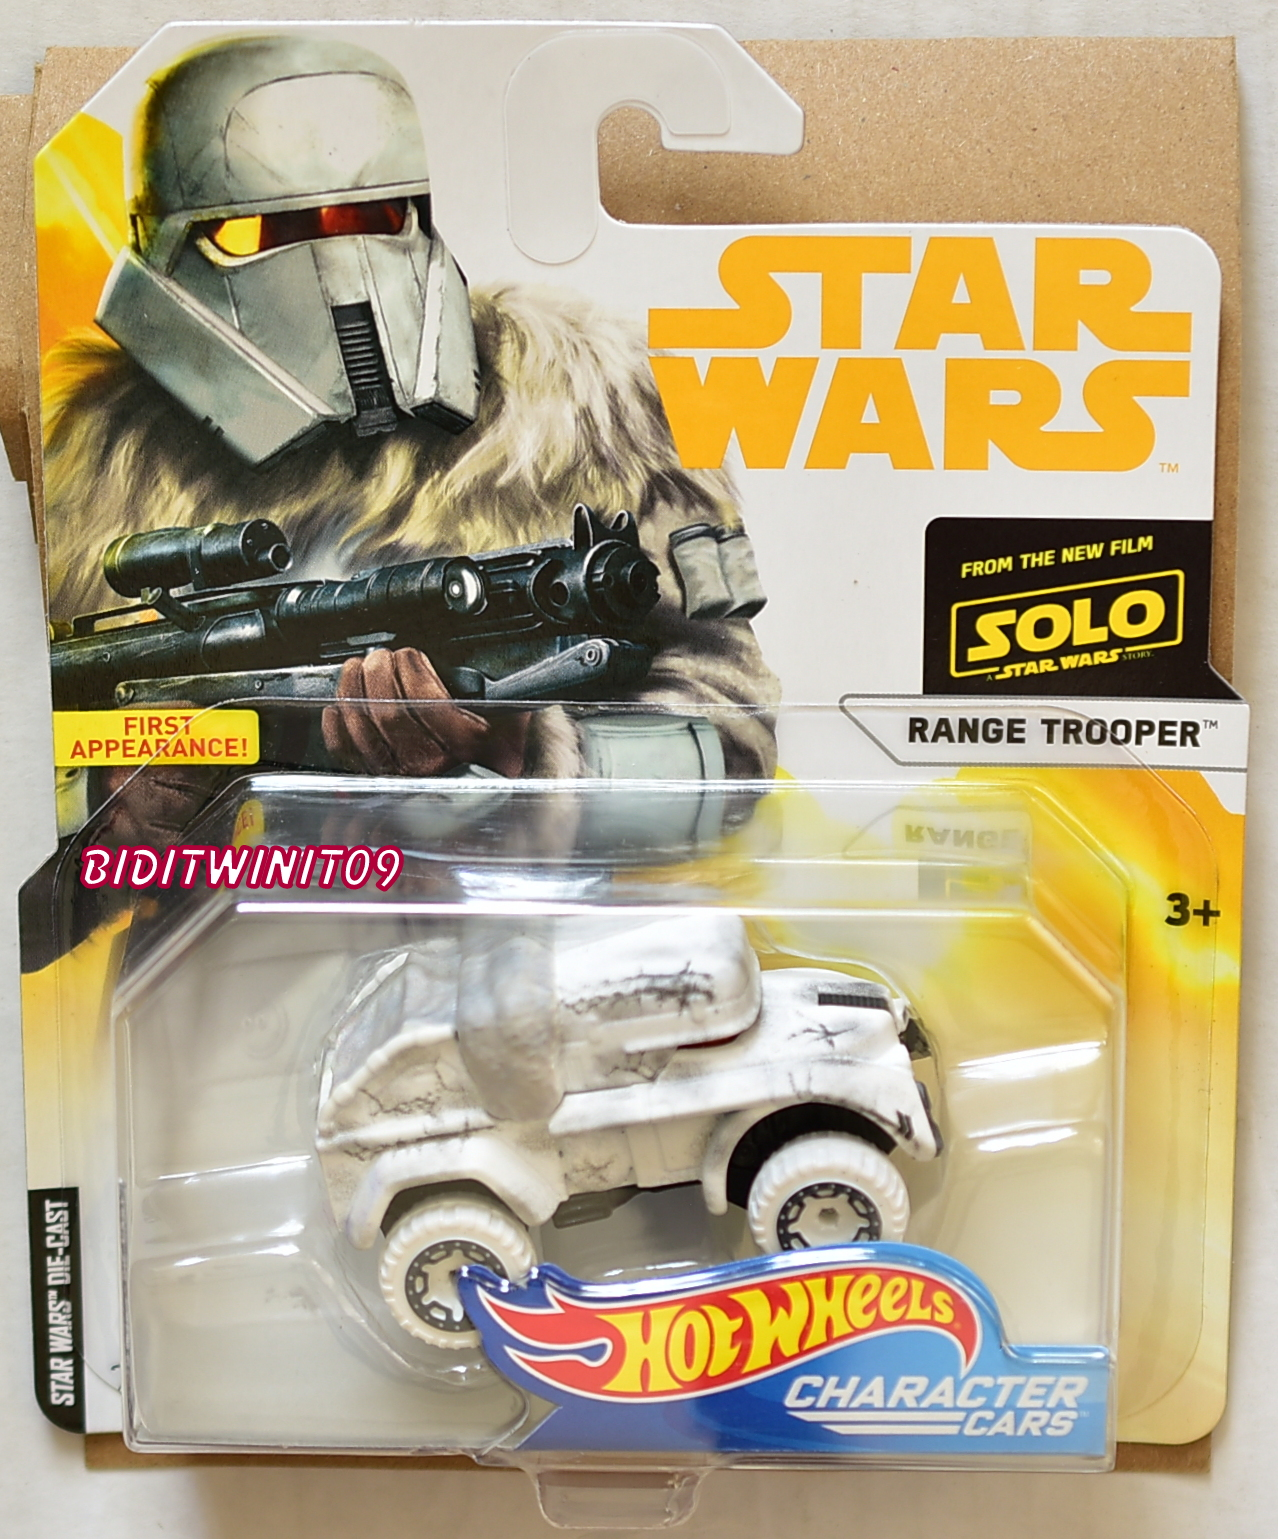 HOT WHEELS 2018 STAR WARS RANGE TROOPER CHARACTER CARS